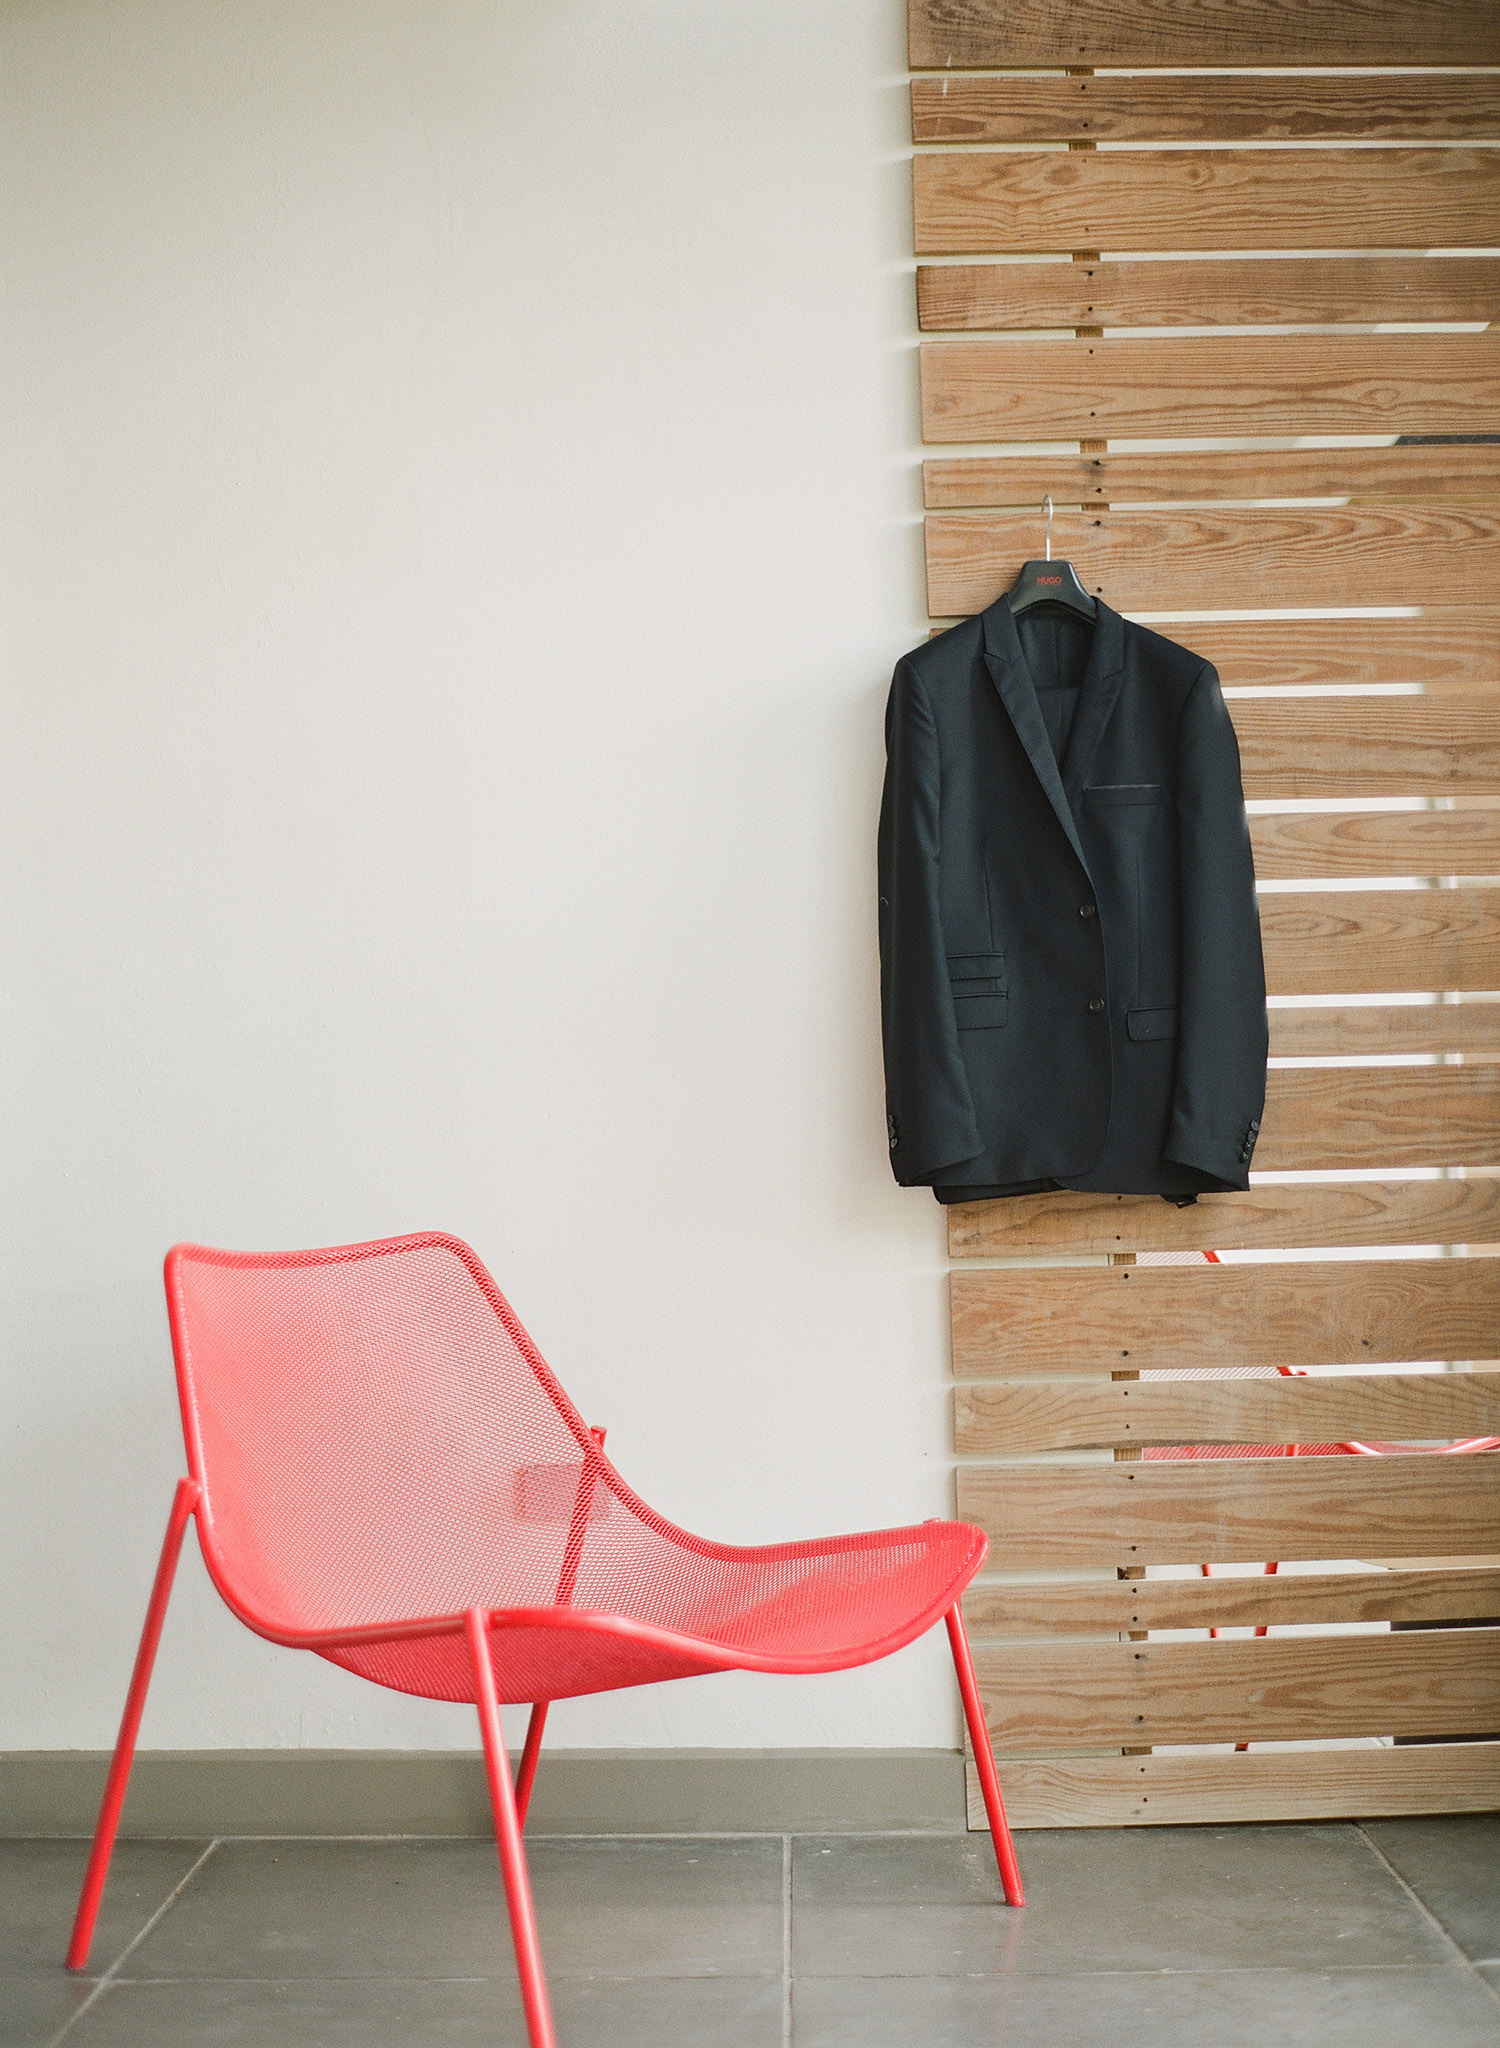 the groom's jacket hangs outside his room at this destination wedding in vieques island at the W hotel while destination wedding photographer, Lexia Frank, a film photographer shooting destination weddings worldwide photographs their vieques island wedding on film